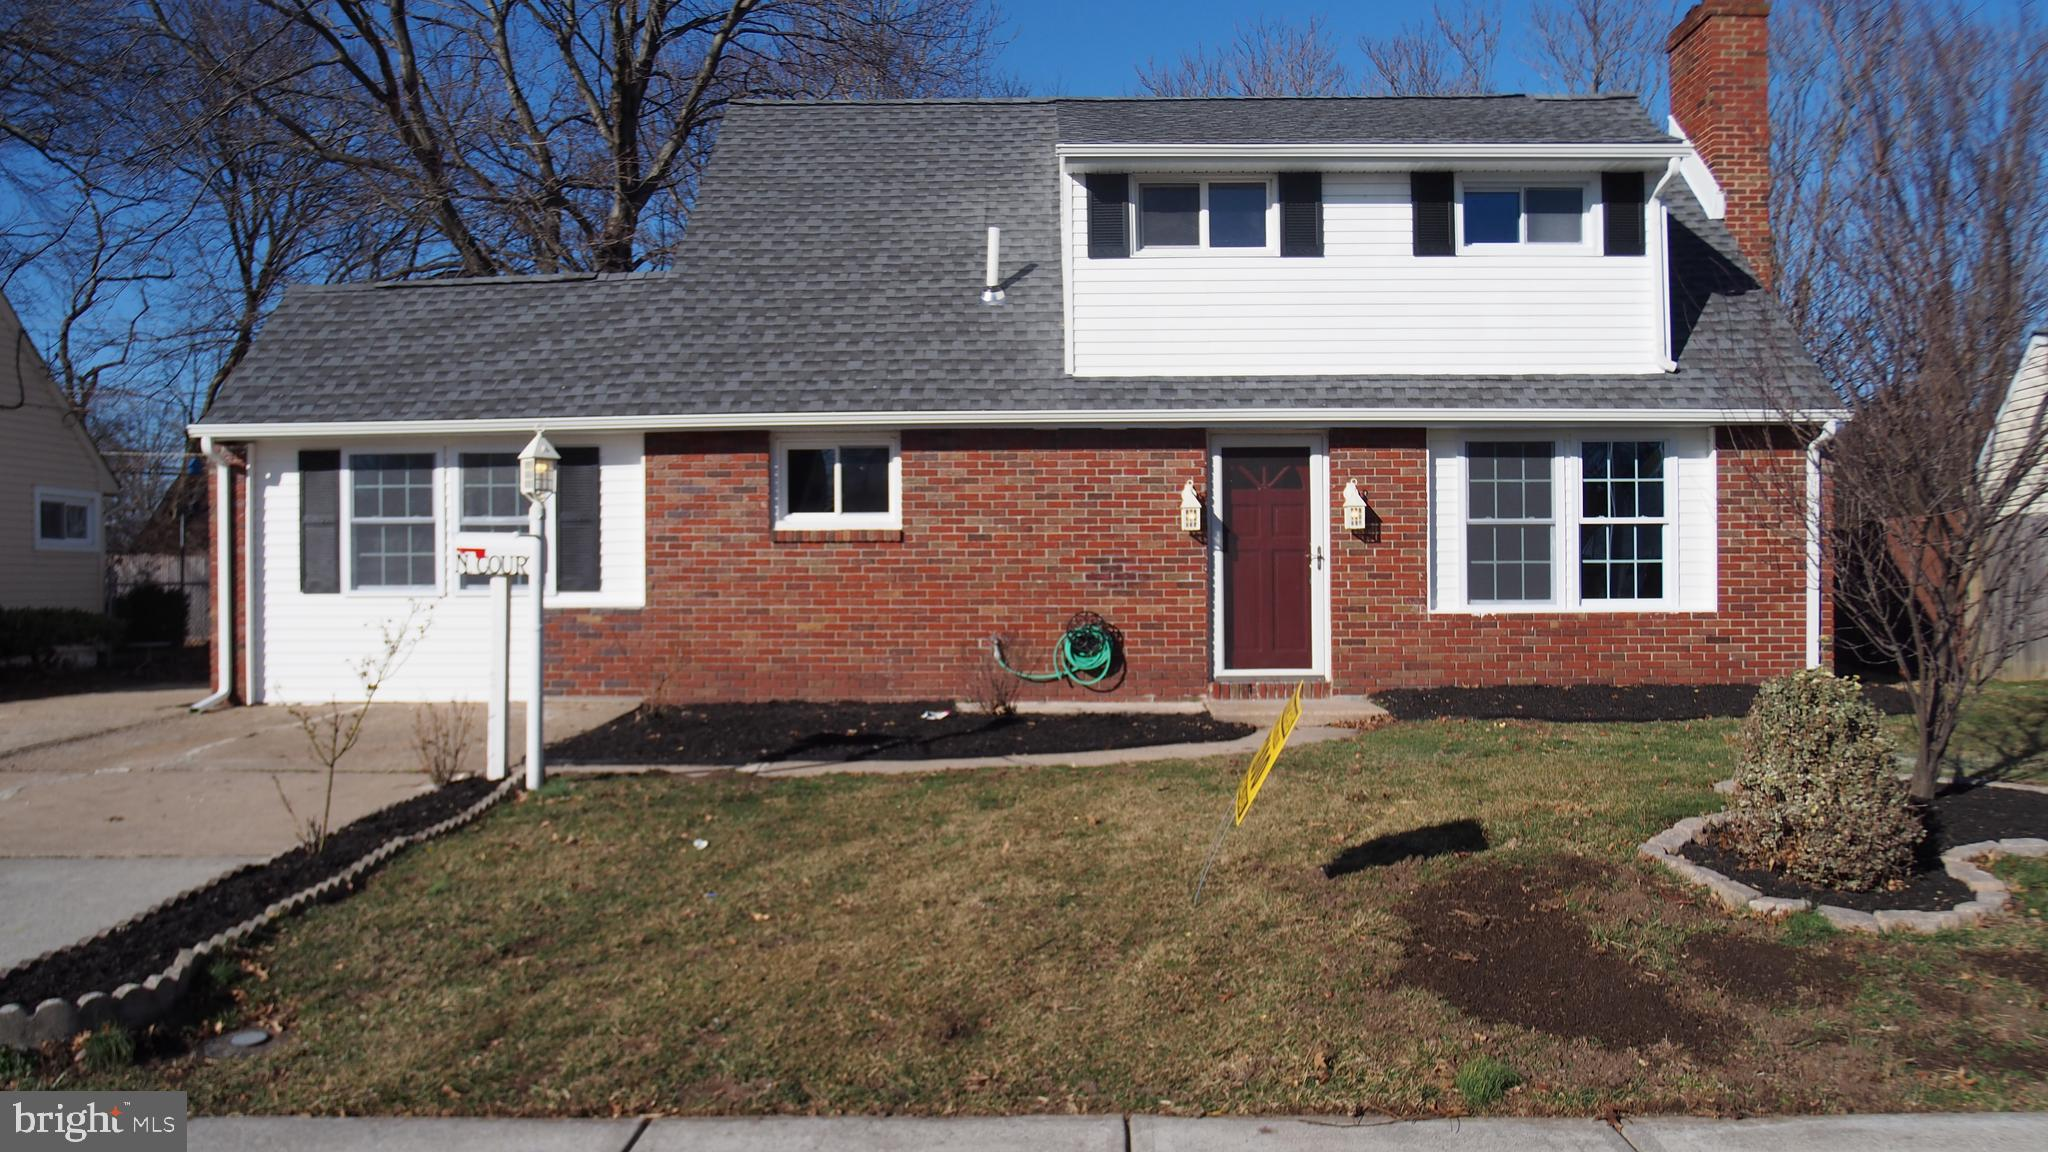 21 N COURT LANE, LEVITTOWN, PA 19054